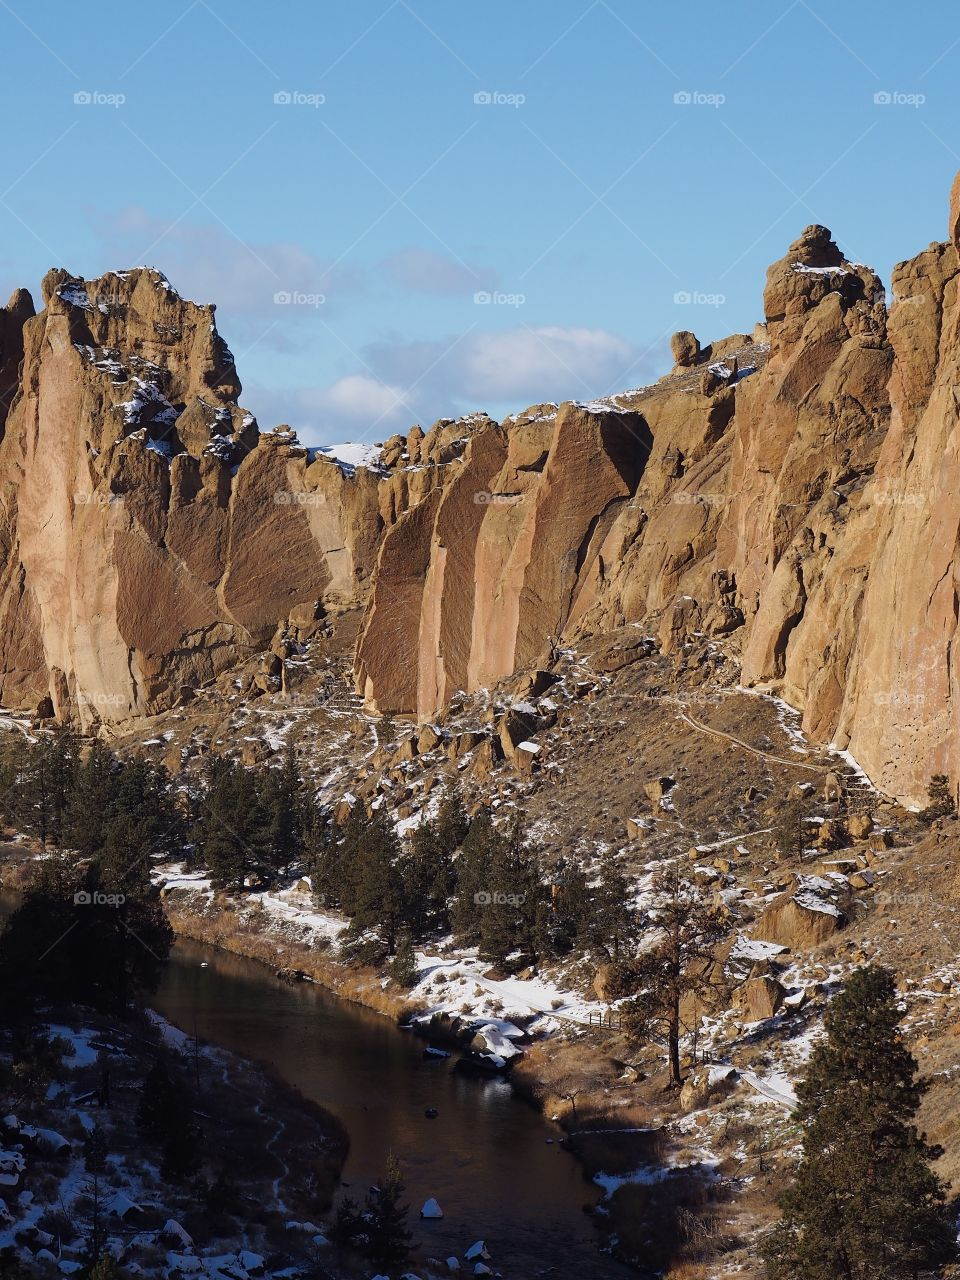 The Crooked River in Central Oregon flows through Smith Rocks State Park with a layer of snow on a sunny winter day.